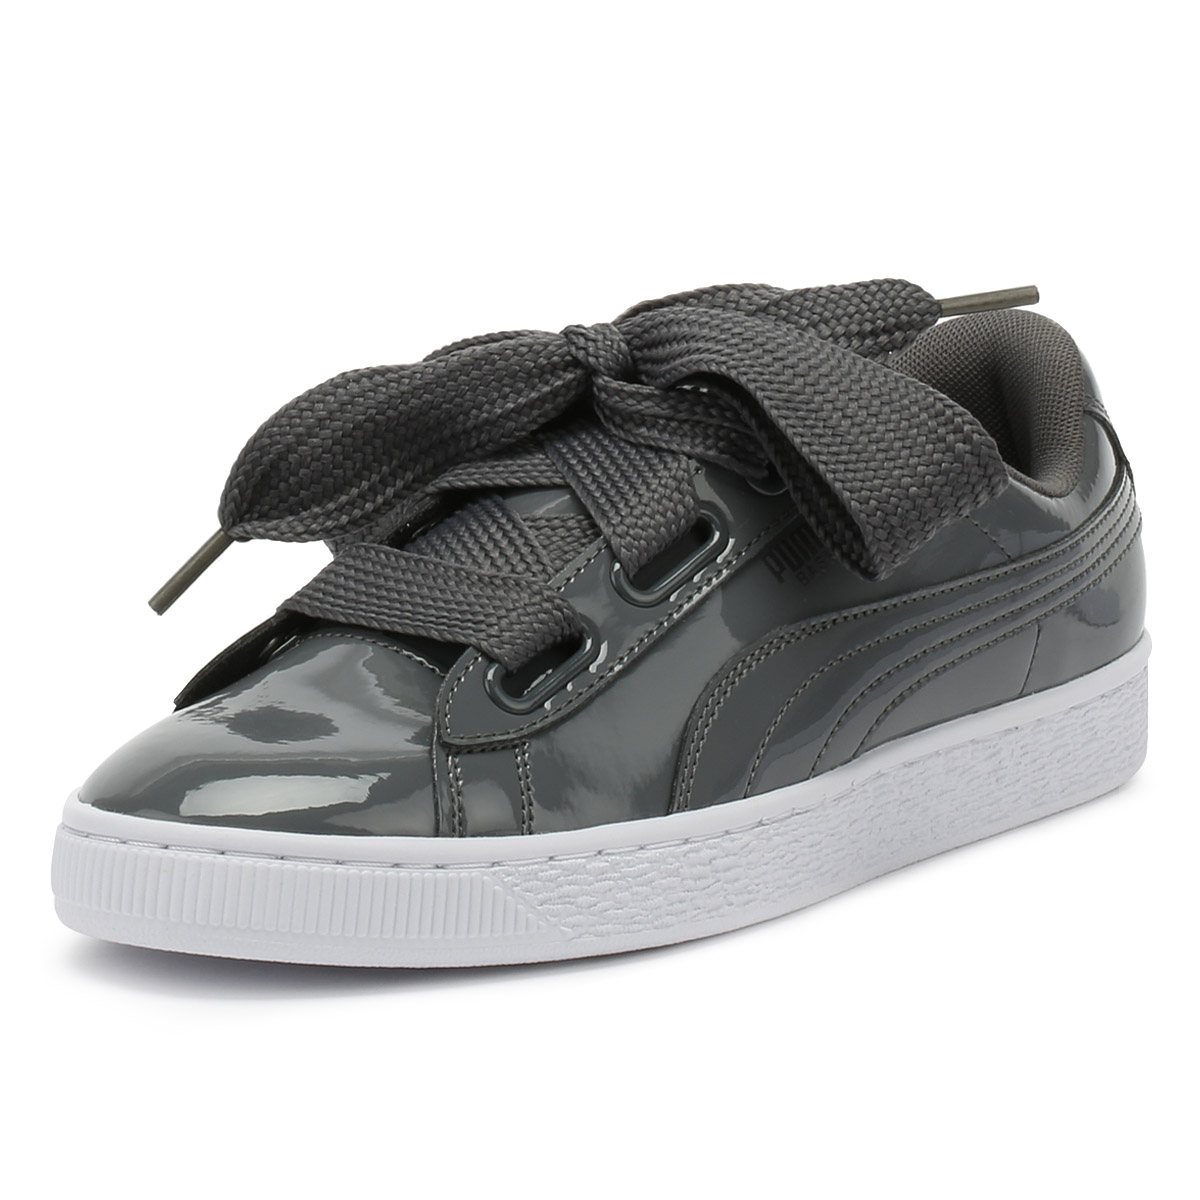 low cost 7f6c8 7e8a0 PUMA WOMENS TRAINERS Iron Gate Grey Basket Heart Patent Ladies Casual Shoes